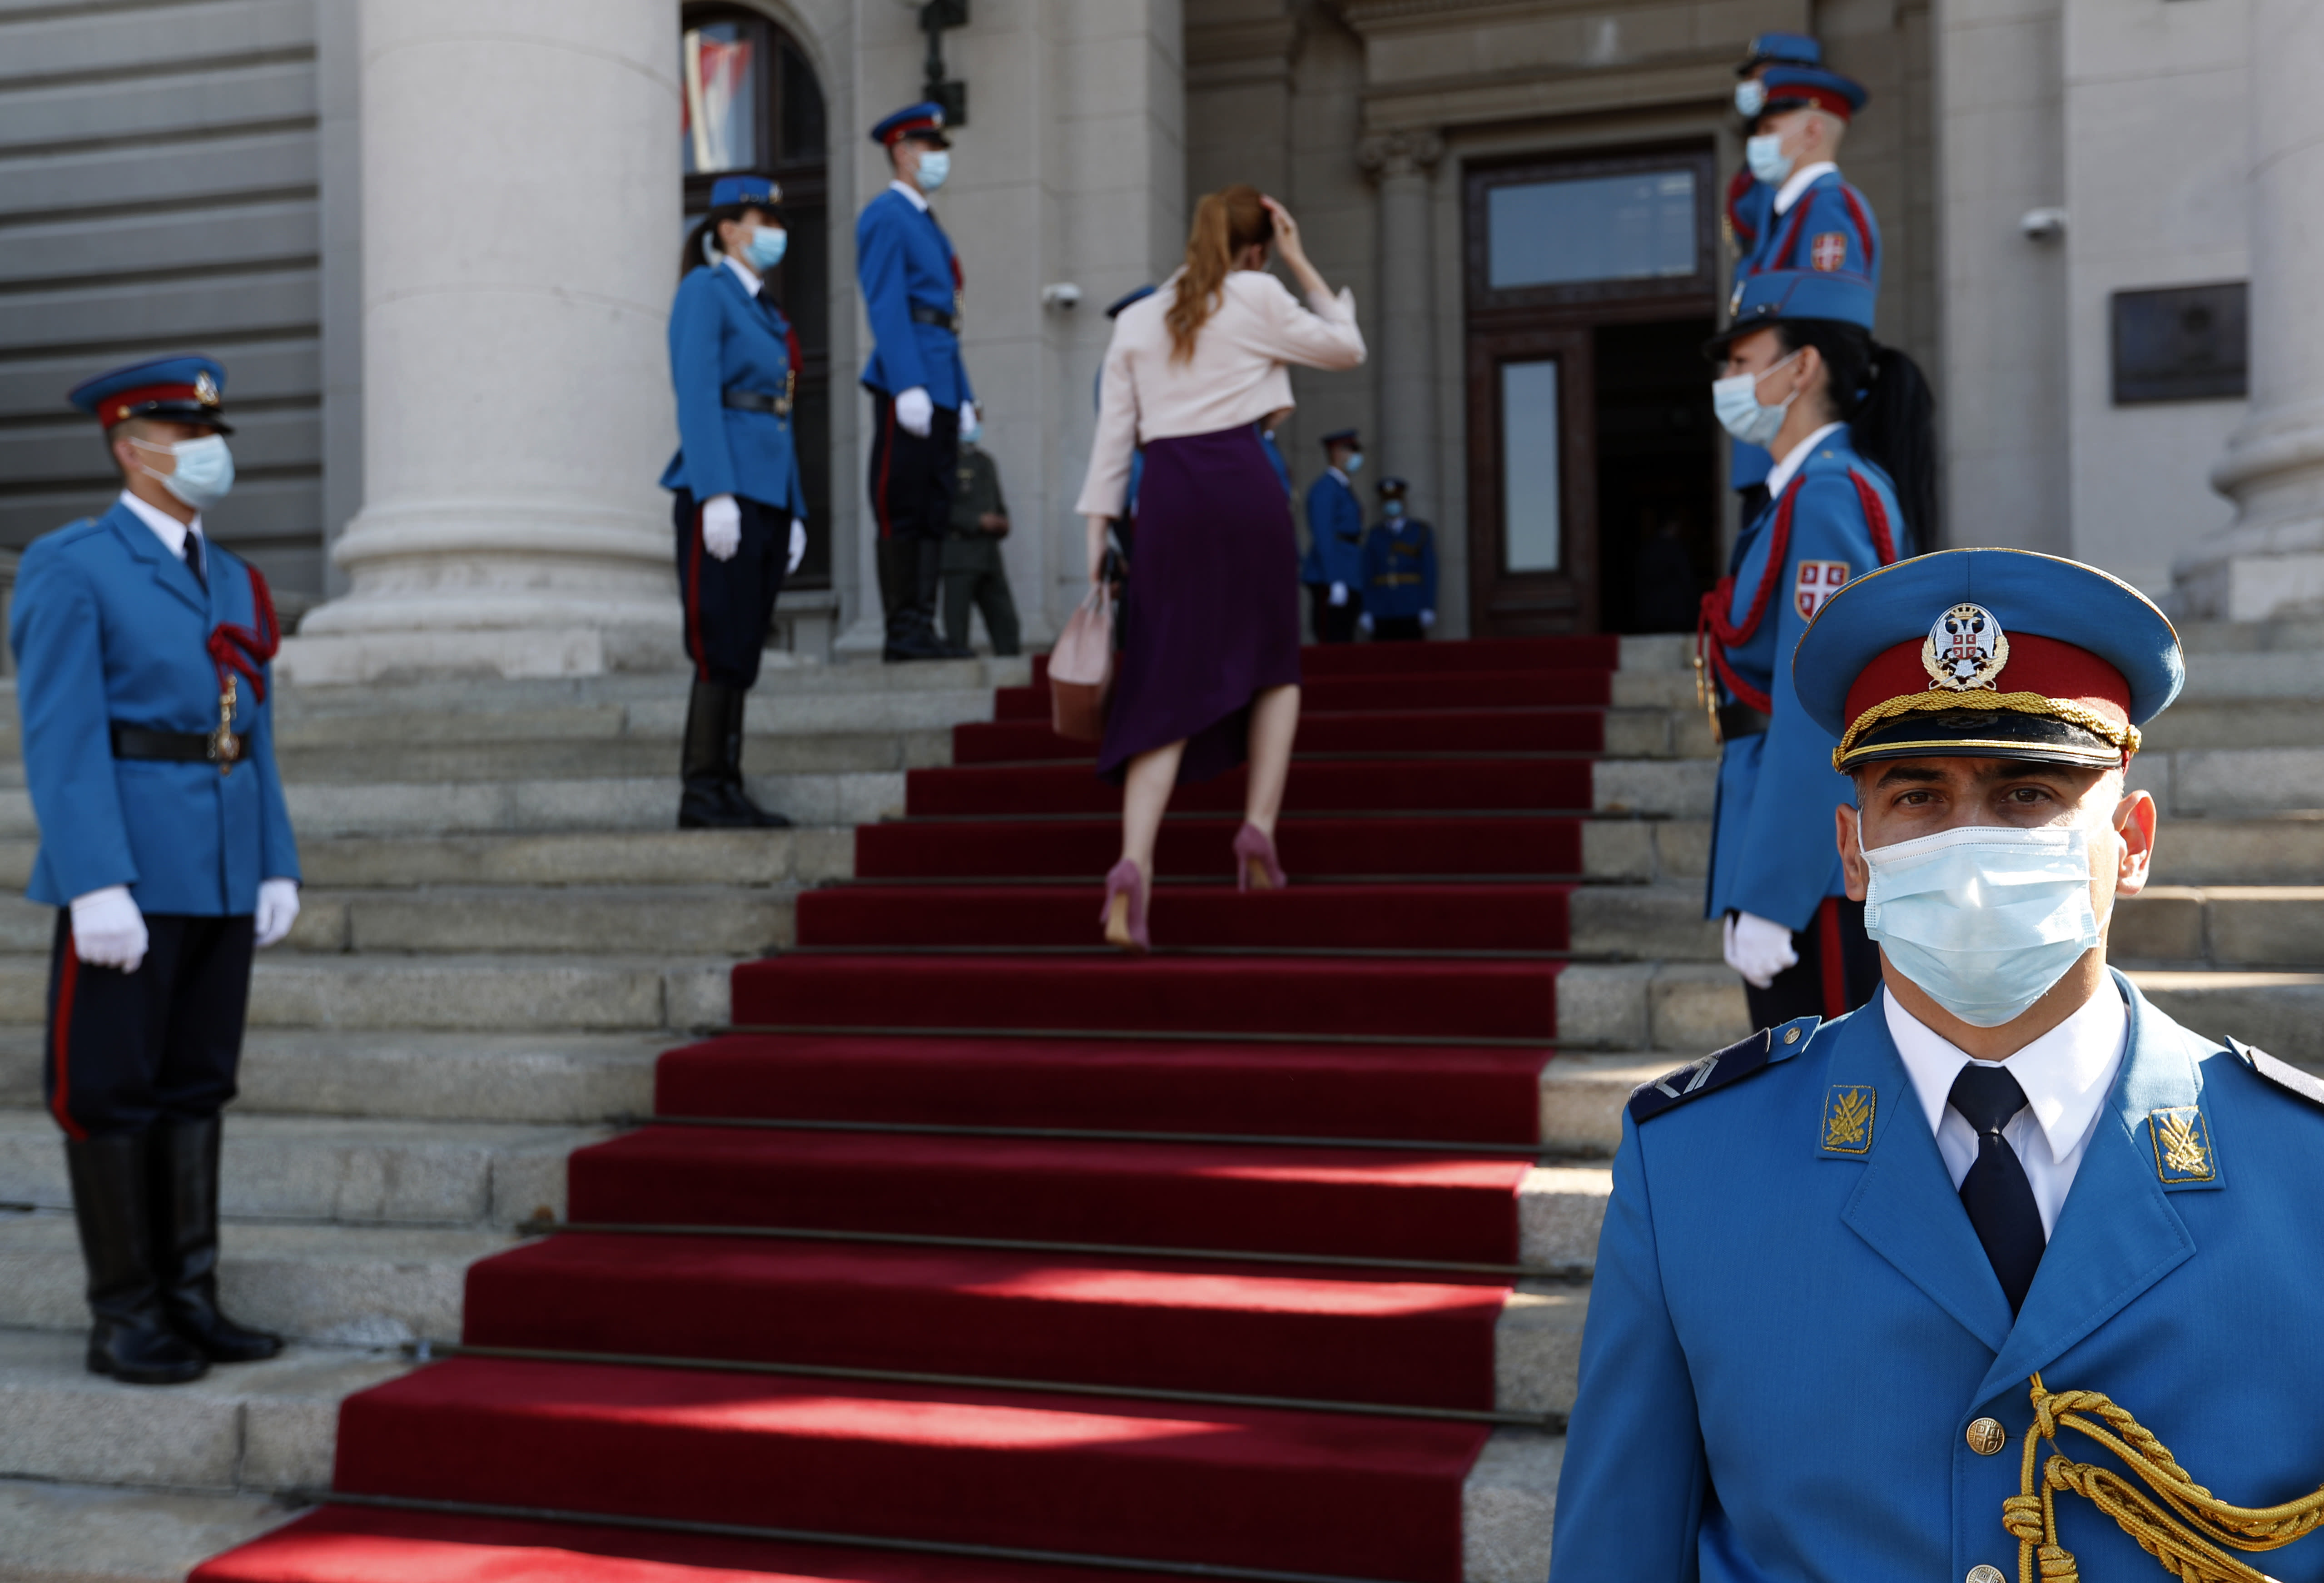 Serbia's army guard of honor wearing face masks to prevent the spread of coronavirus, stand in front of the parliament building before the inaugural parliament session in Belgrade, Serbia, Monday, Aug. 3, 2020. The Serbian parliament reconvened Monday amid protests by opposition and far-right supporters who claim the parliamentary election that was overwhelmingly won by the ruling populists was rigged. (AP Photo/Darko Vojinovic)